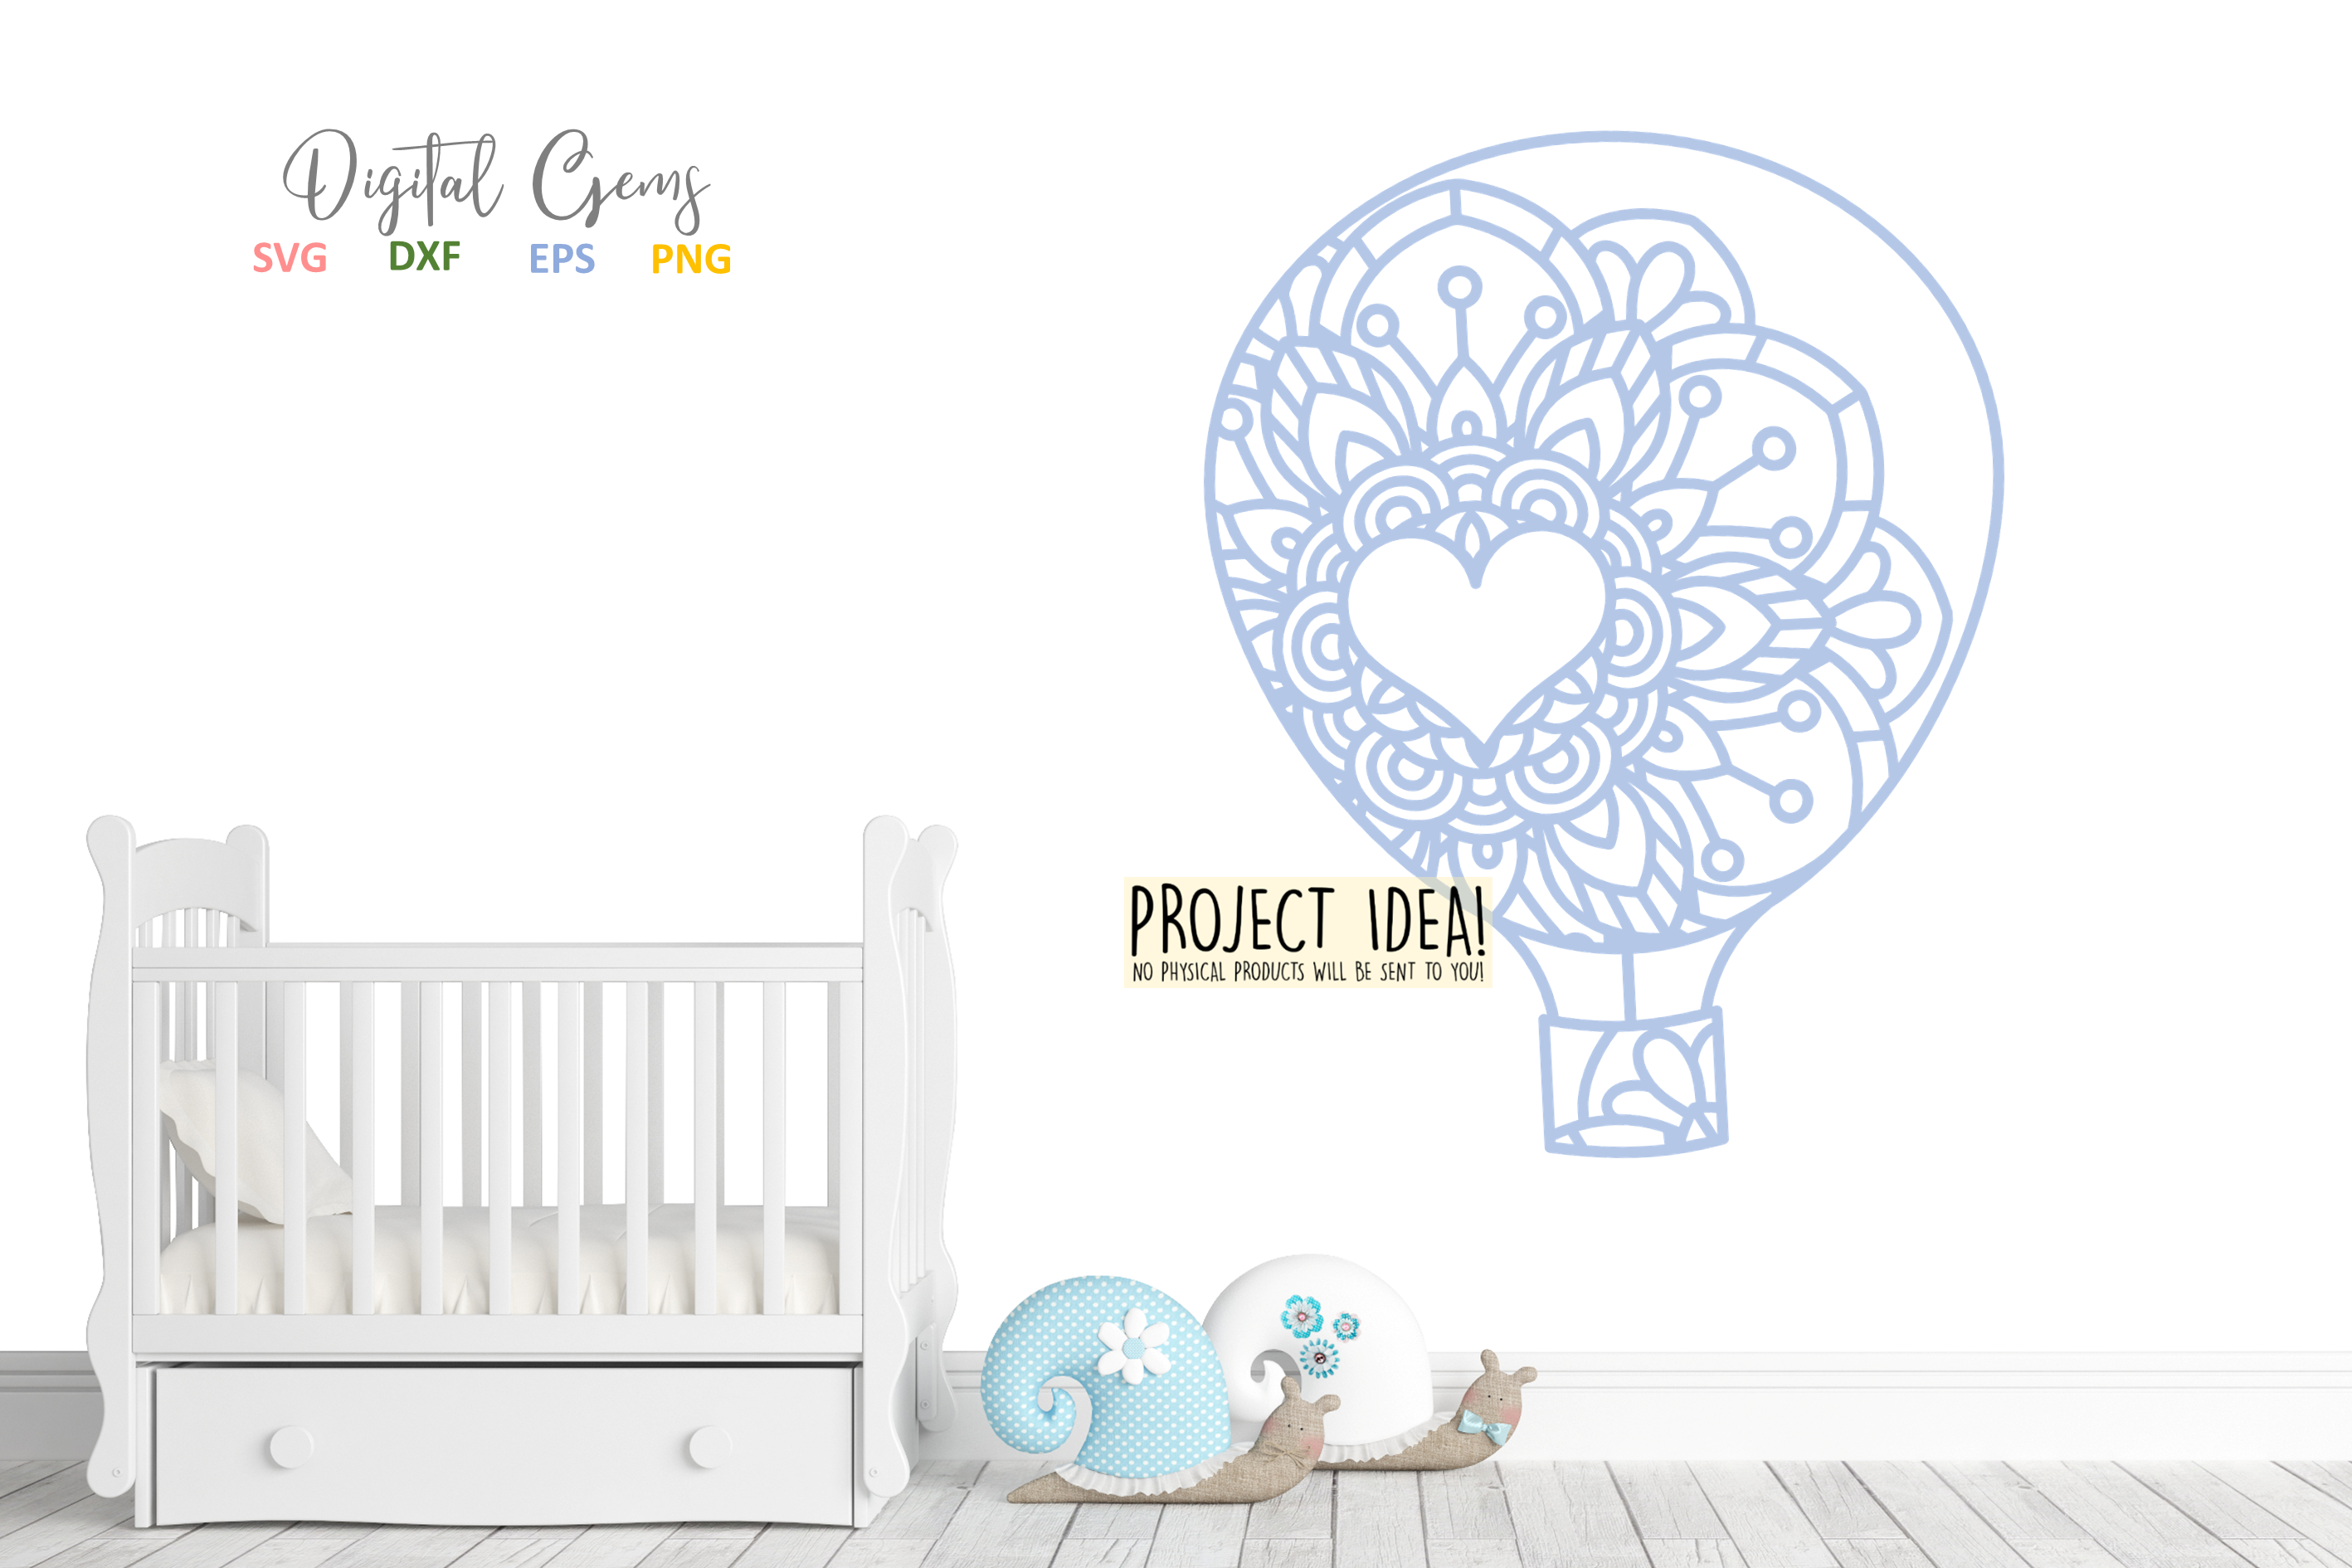 Hot air balloon paper cut design SVG / DXF / EPS / PNG files example image 4